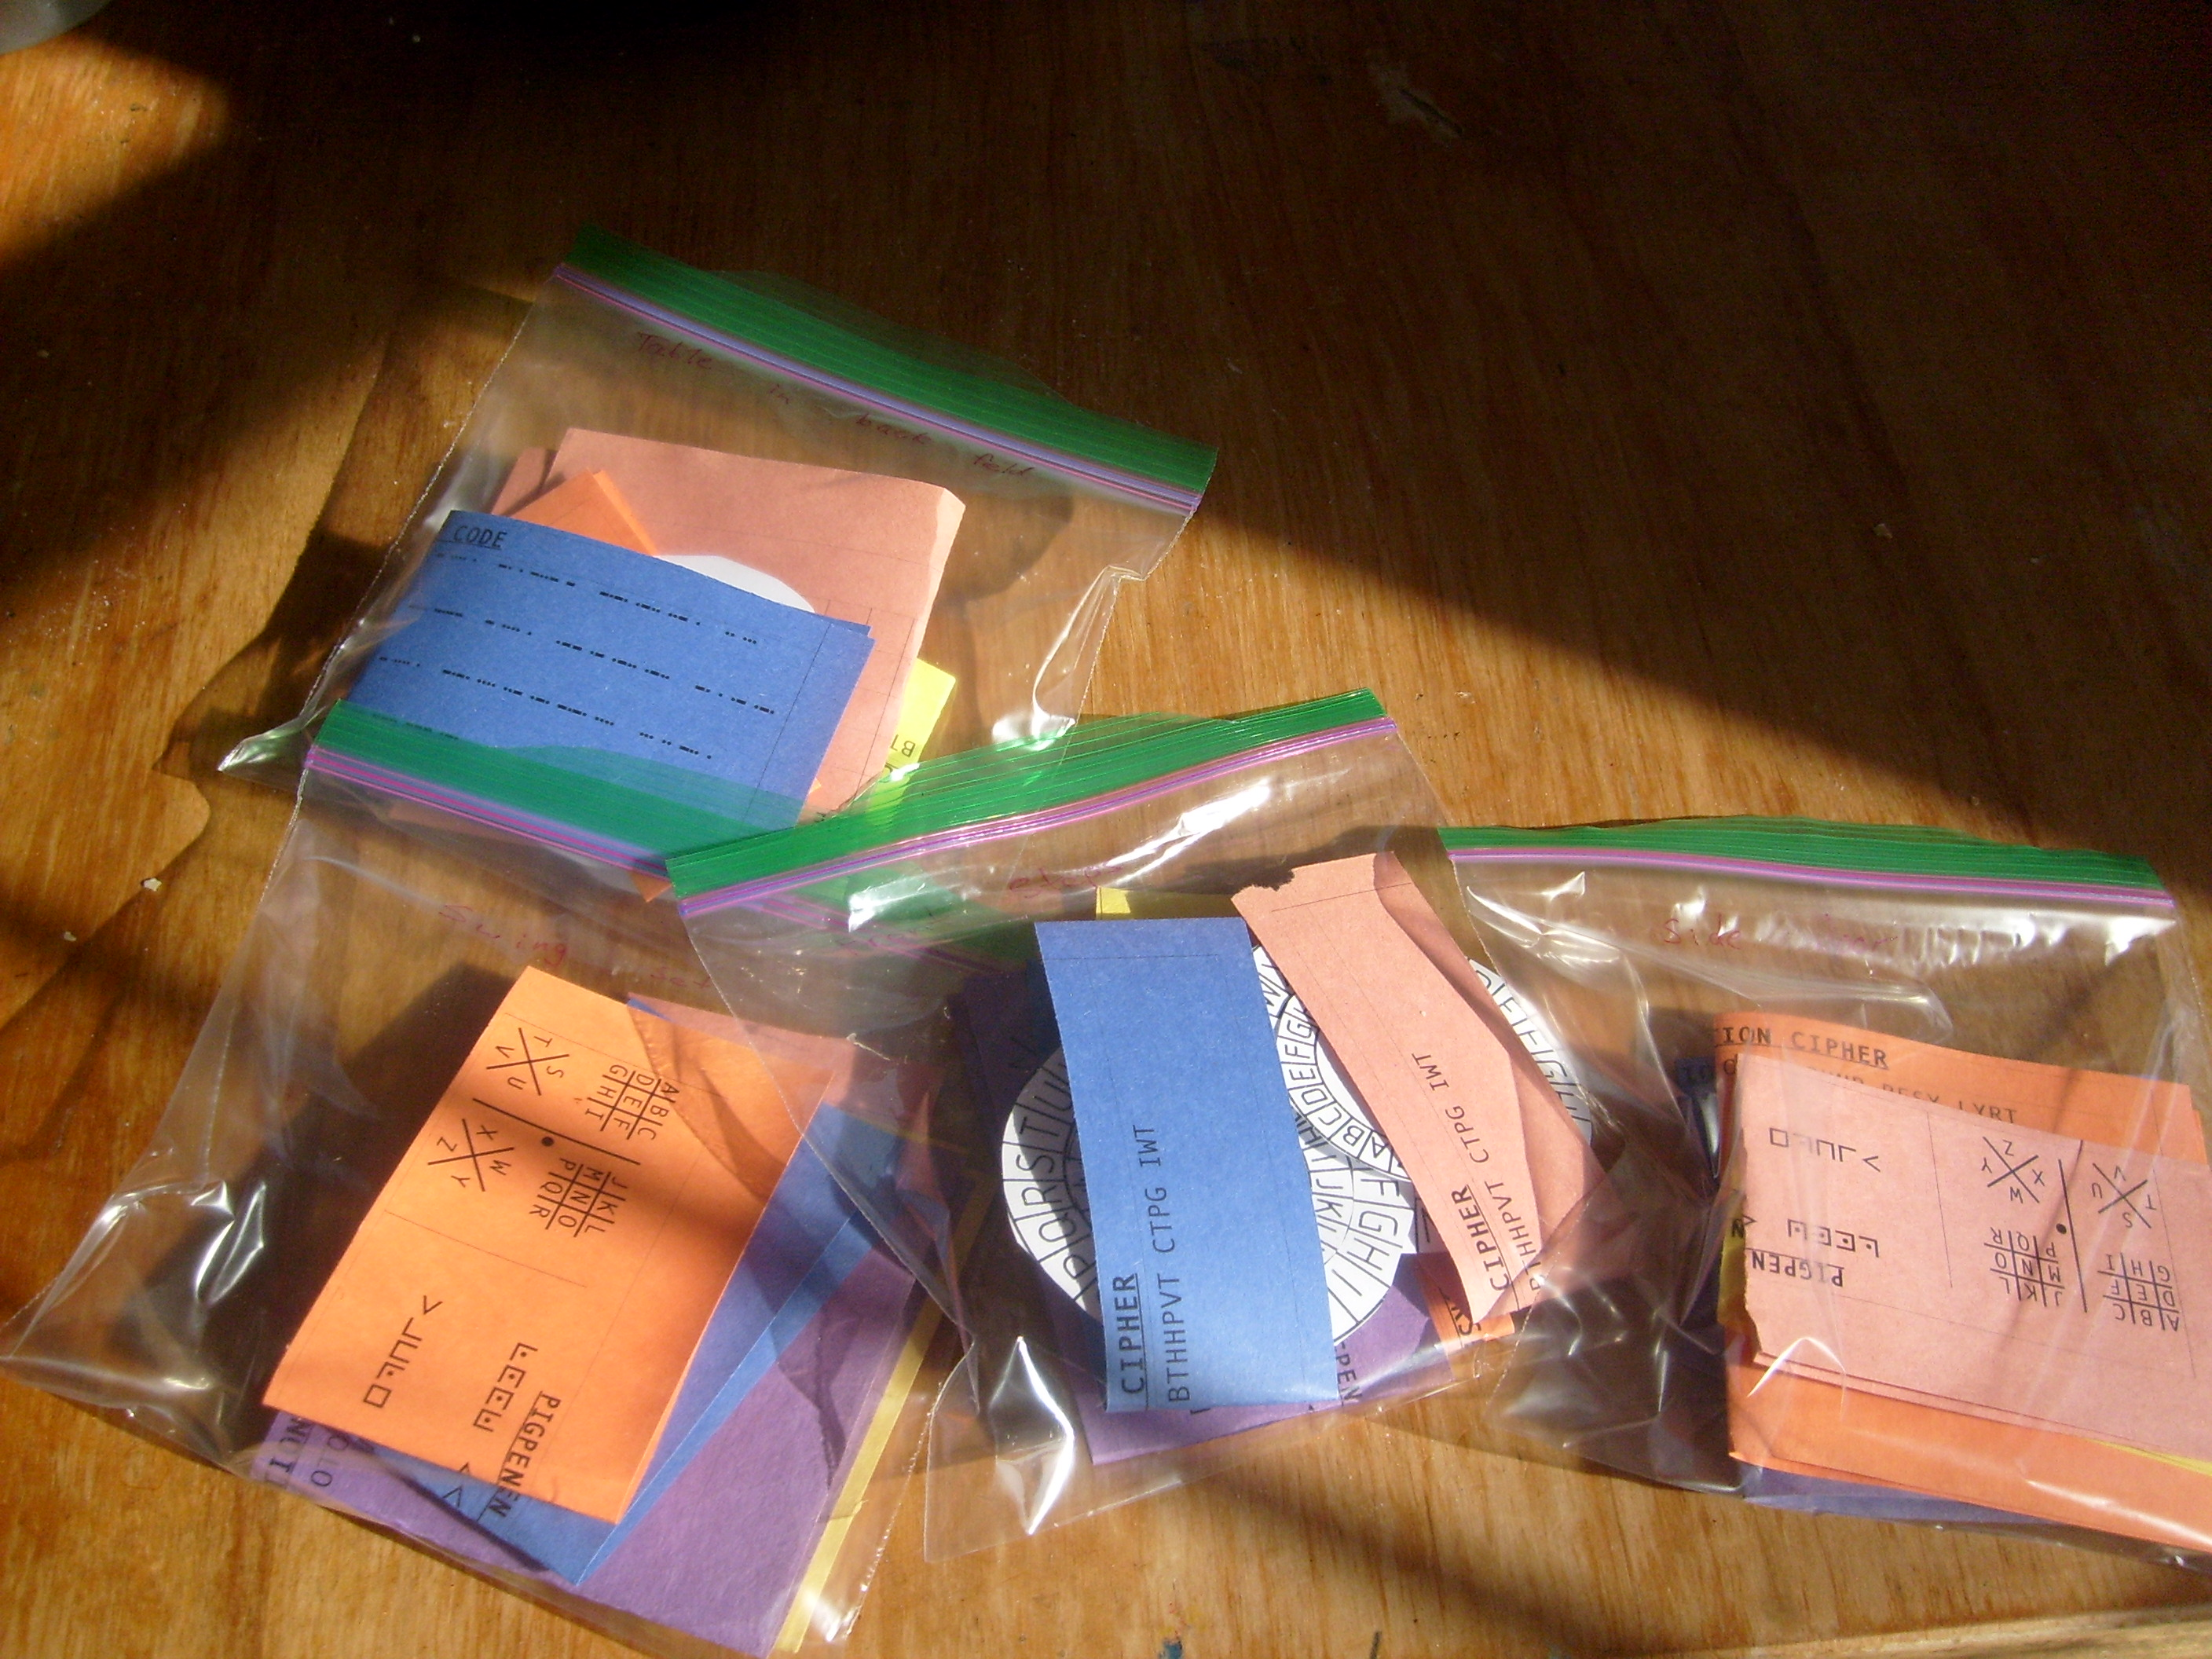 clue bags for the Eagle' Wing's Coop code class